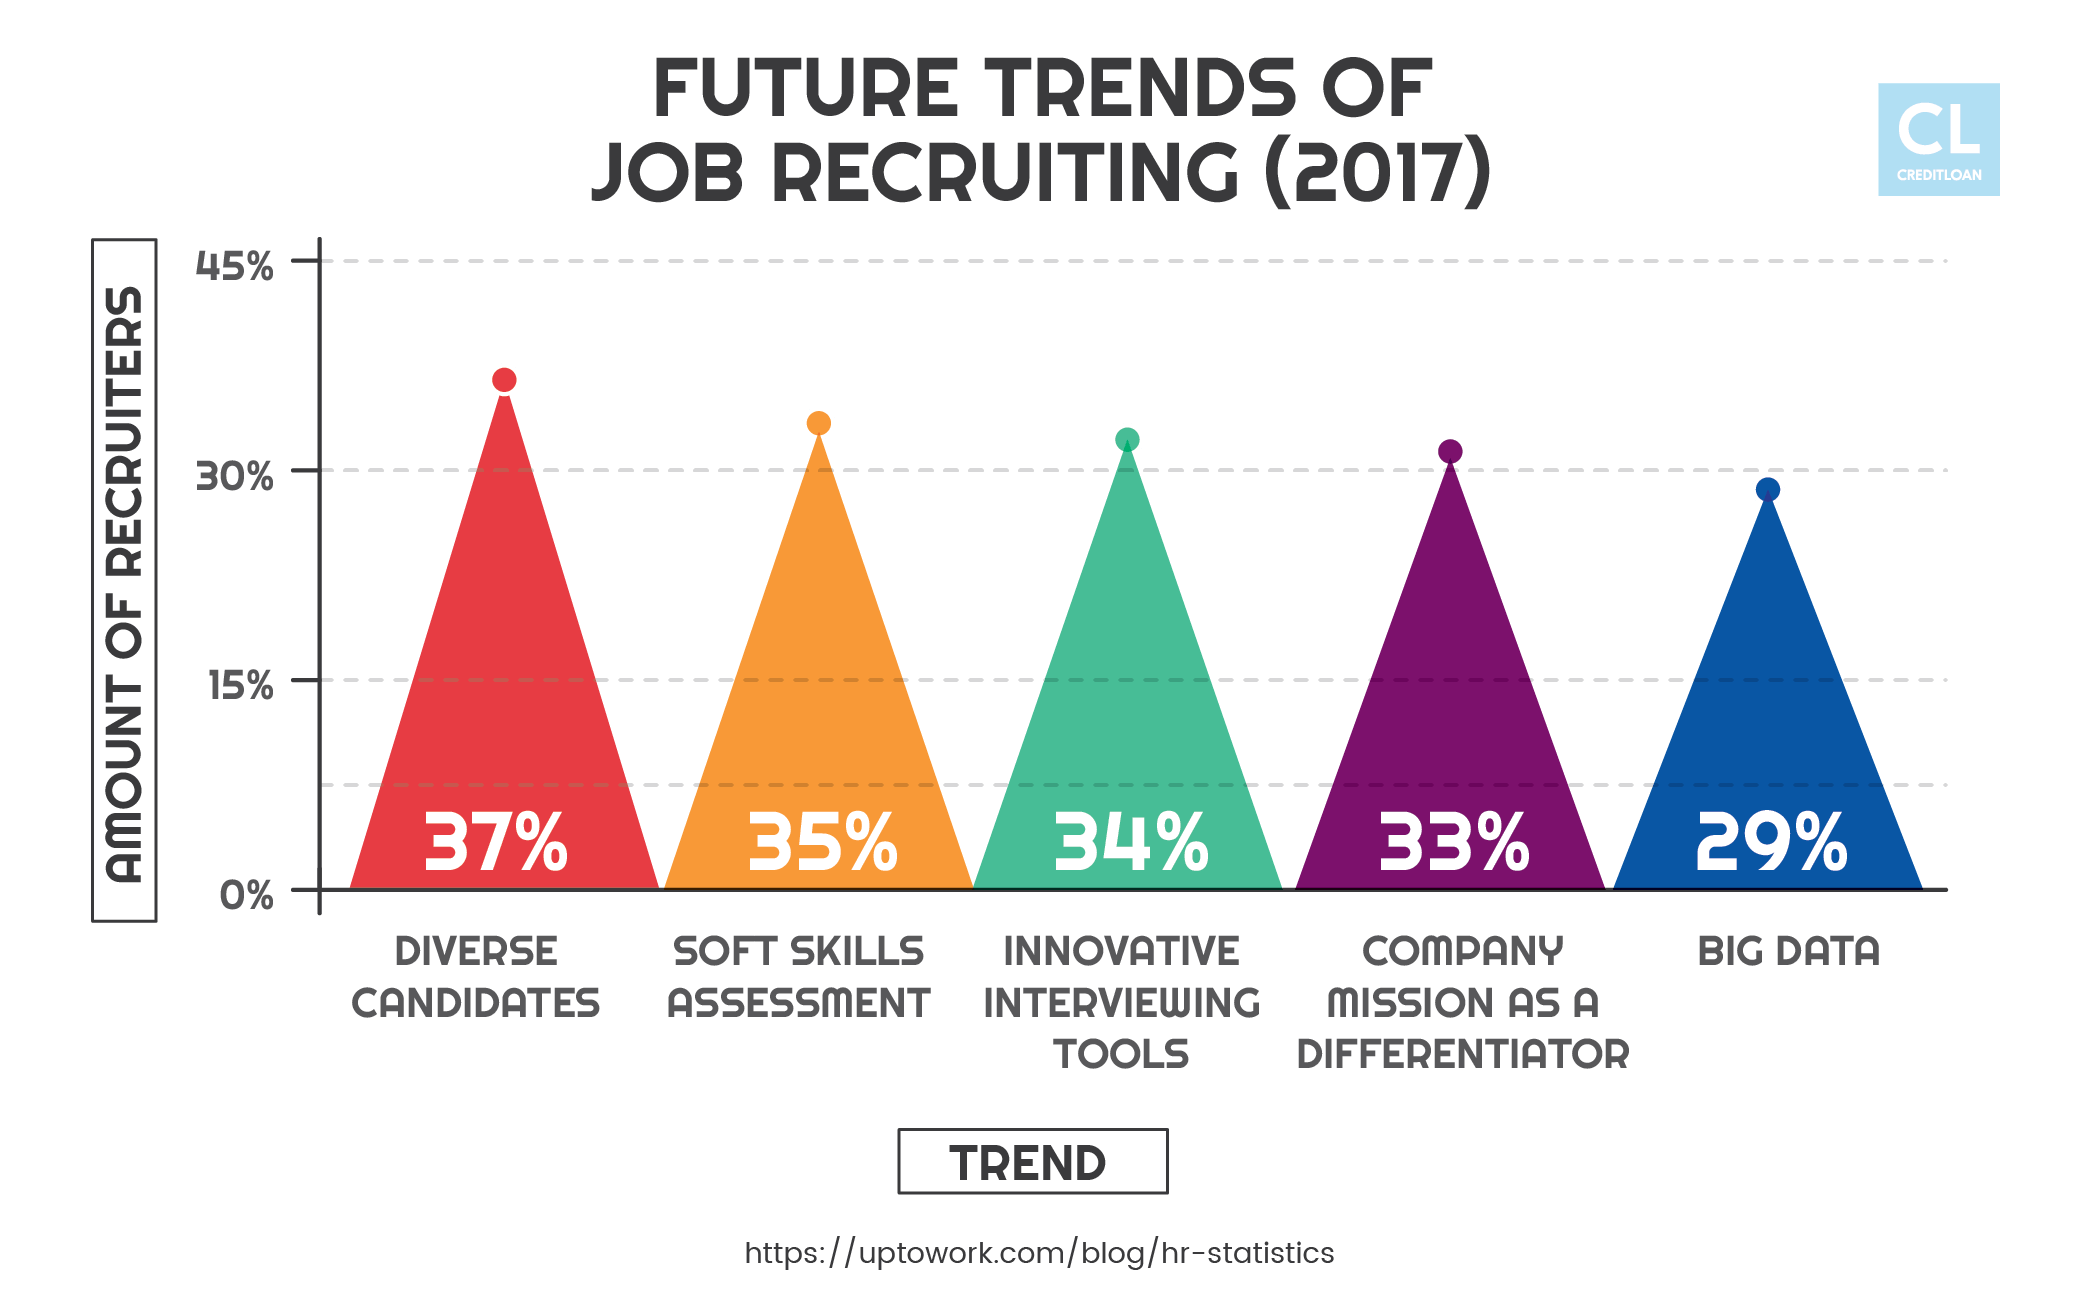 Future Trends of Job Recruiting